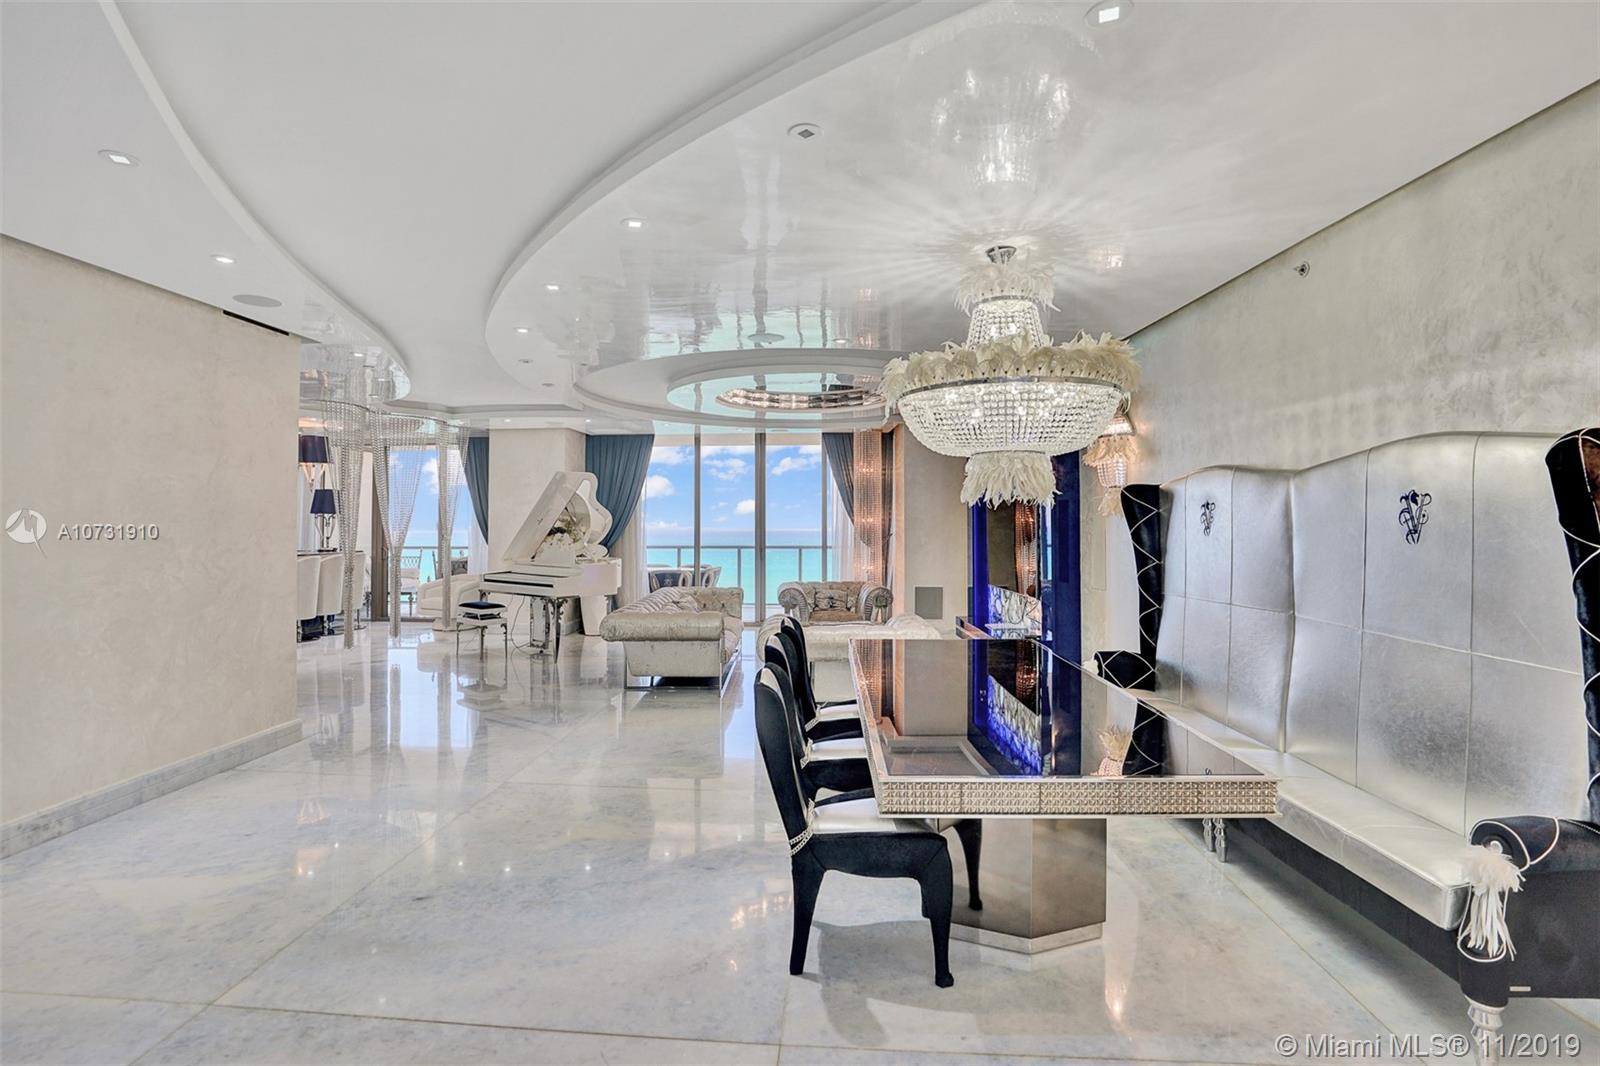 9705 Collins Ave, Unit #2004/2005 Luxury Real Estate